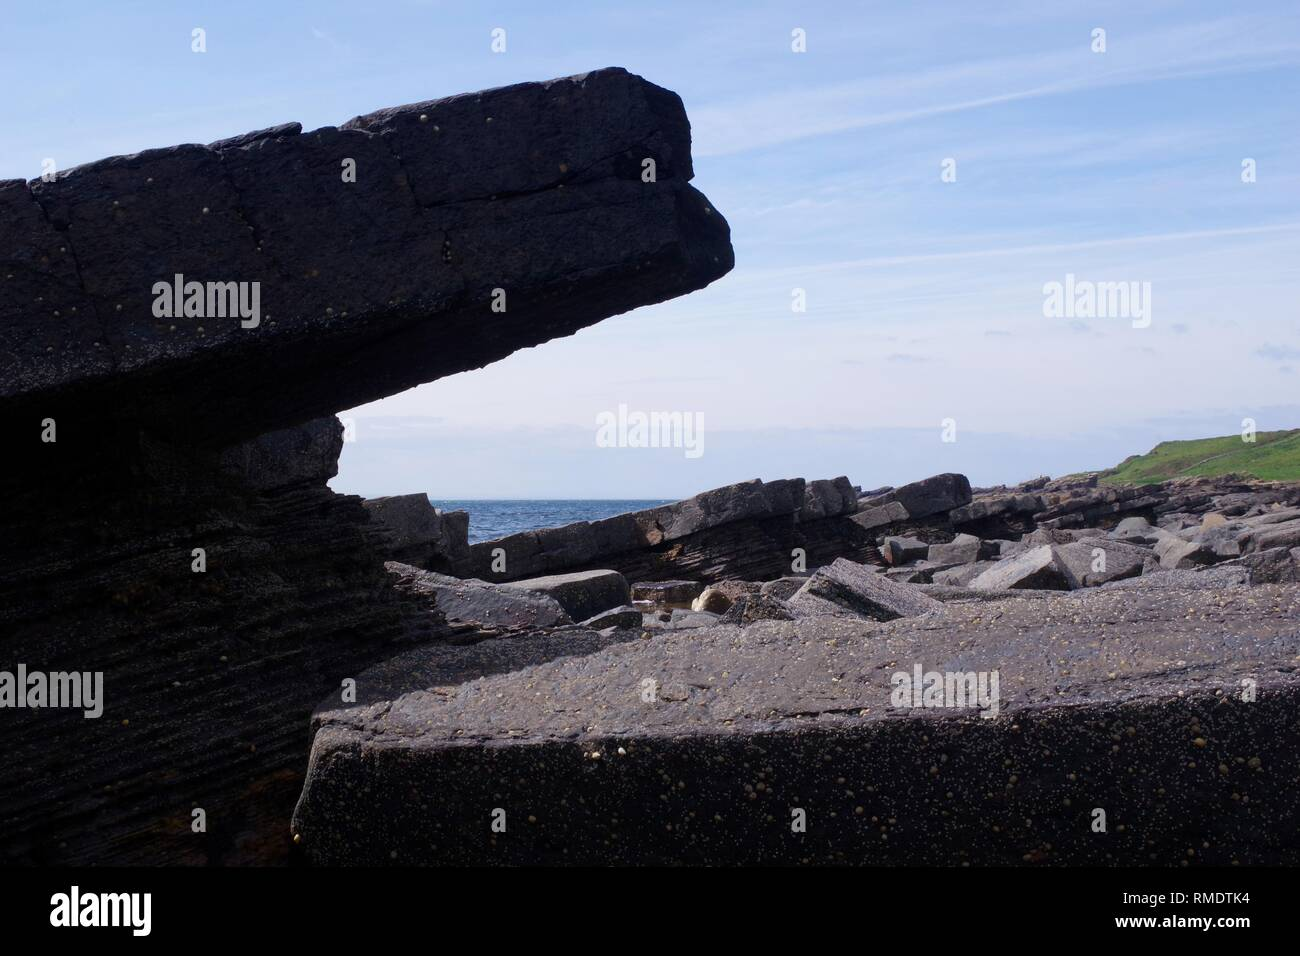 Carboniferous Sandstone Exposed on the Fife coast Near Crail, affected by Conjugate Jointing. Fife, Scotland, UK. - Stock Image